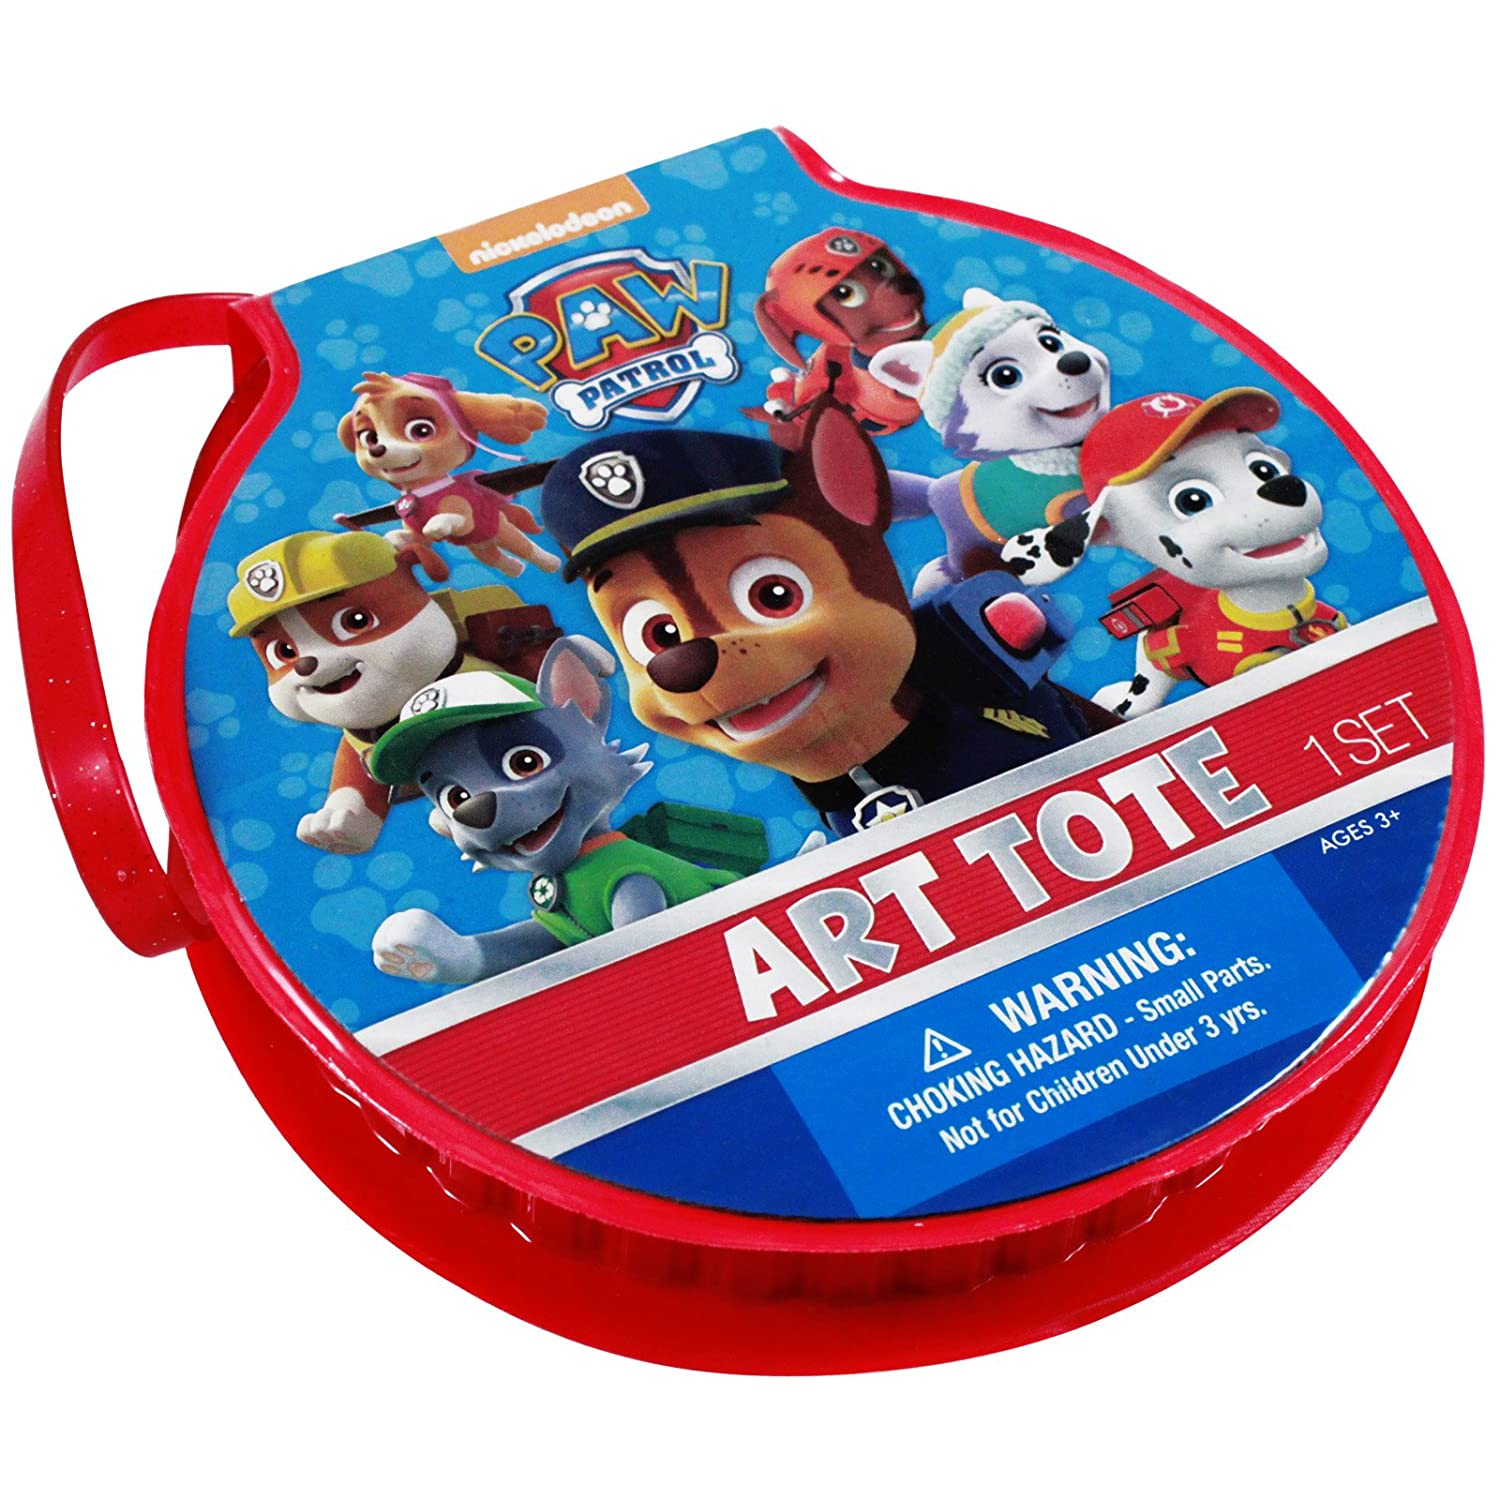 Nickelodeon Paw Patrol Kids Travel Art Case 21pc Kit